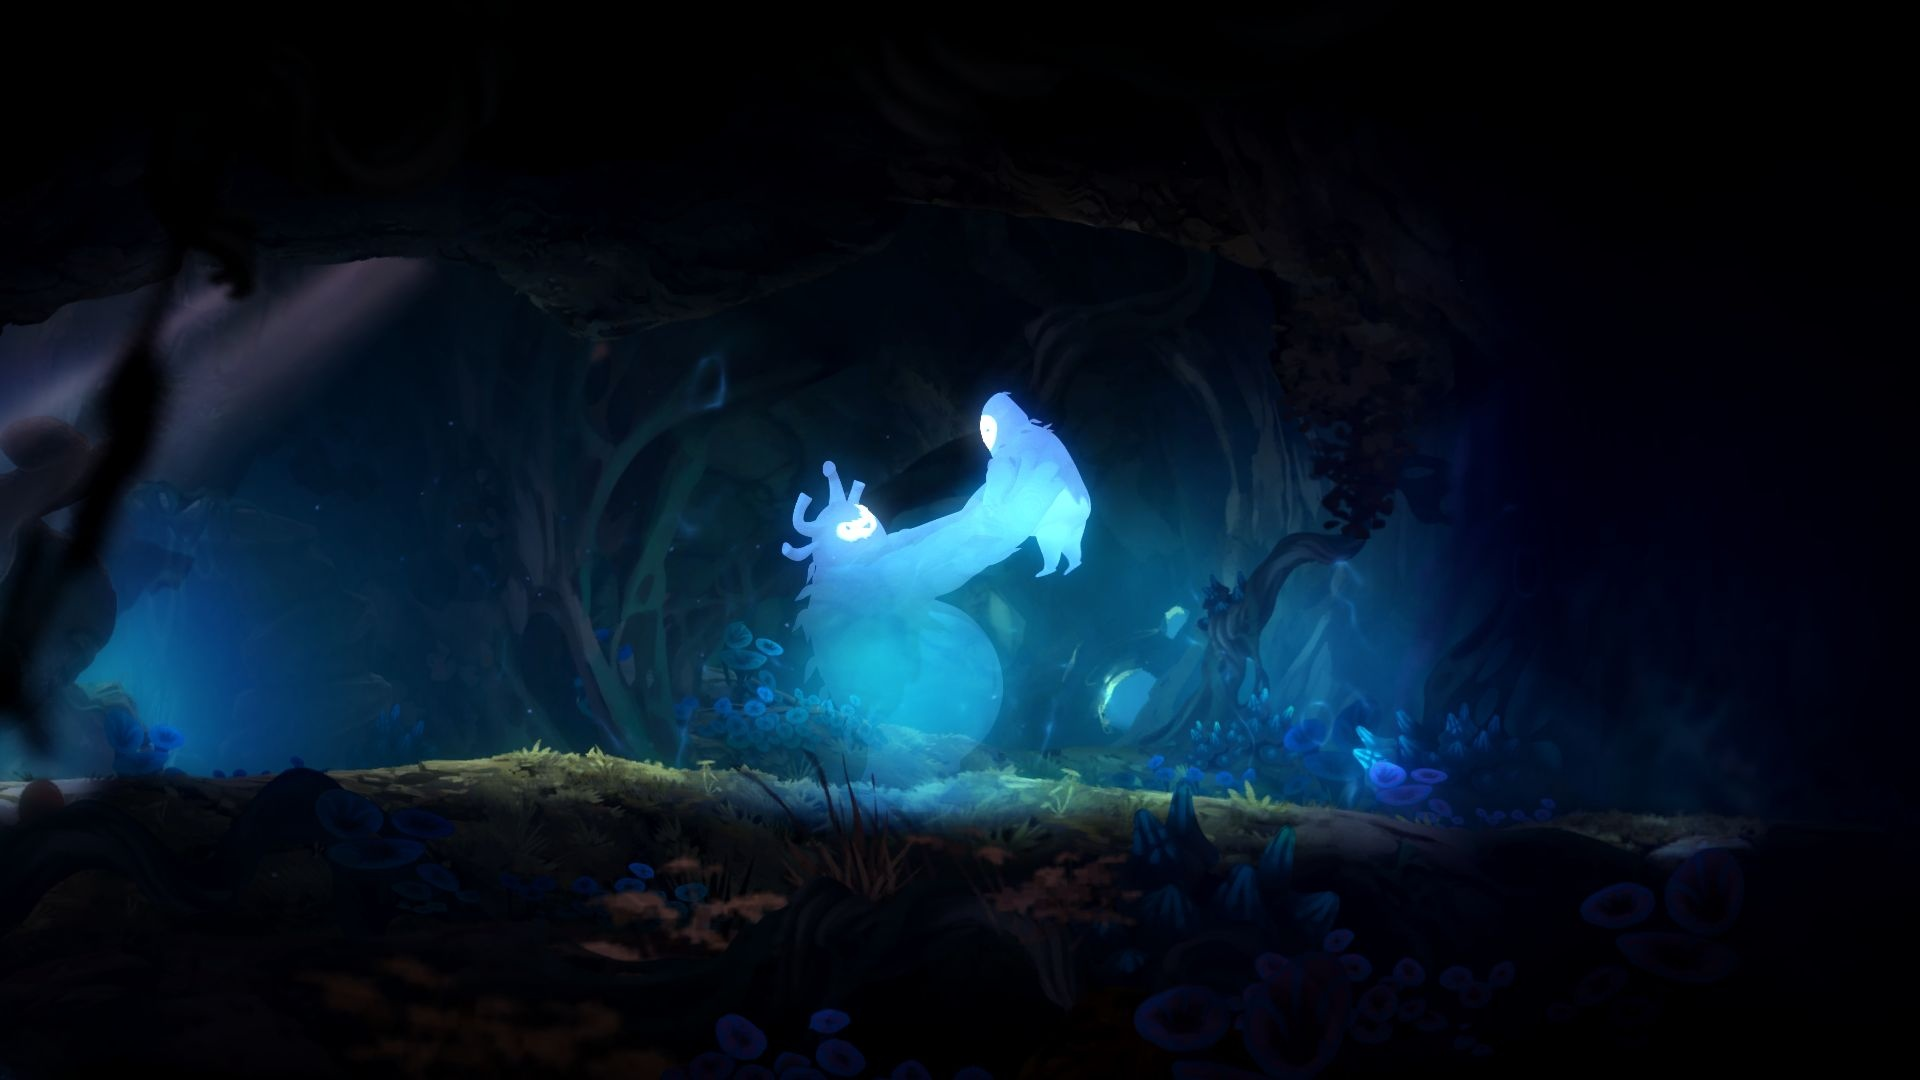 ori_and_the_blind_forest_definitive_edition_screenshot_20160301164816_4_original